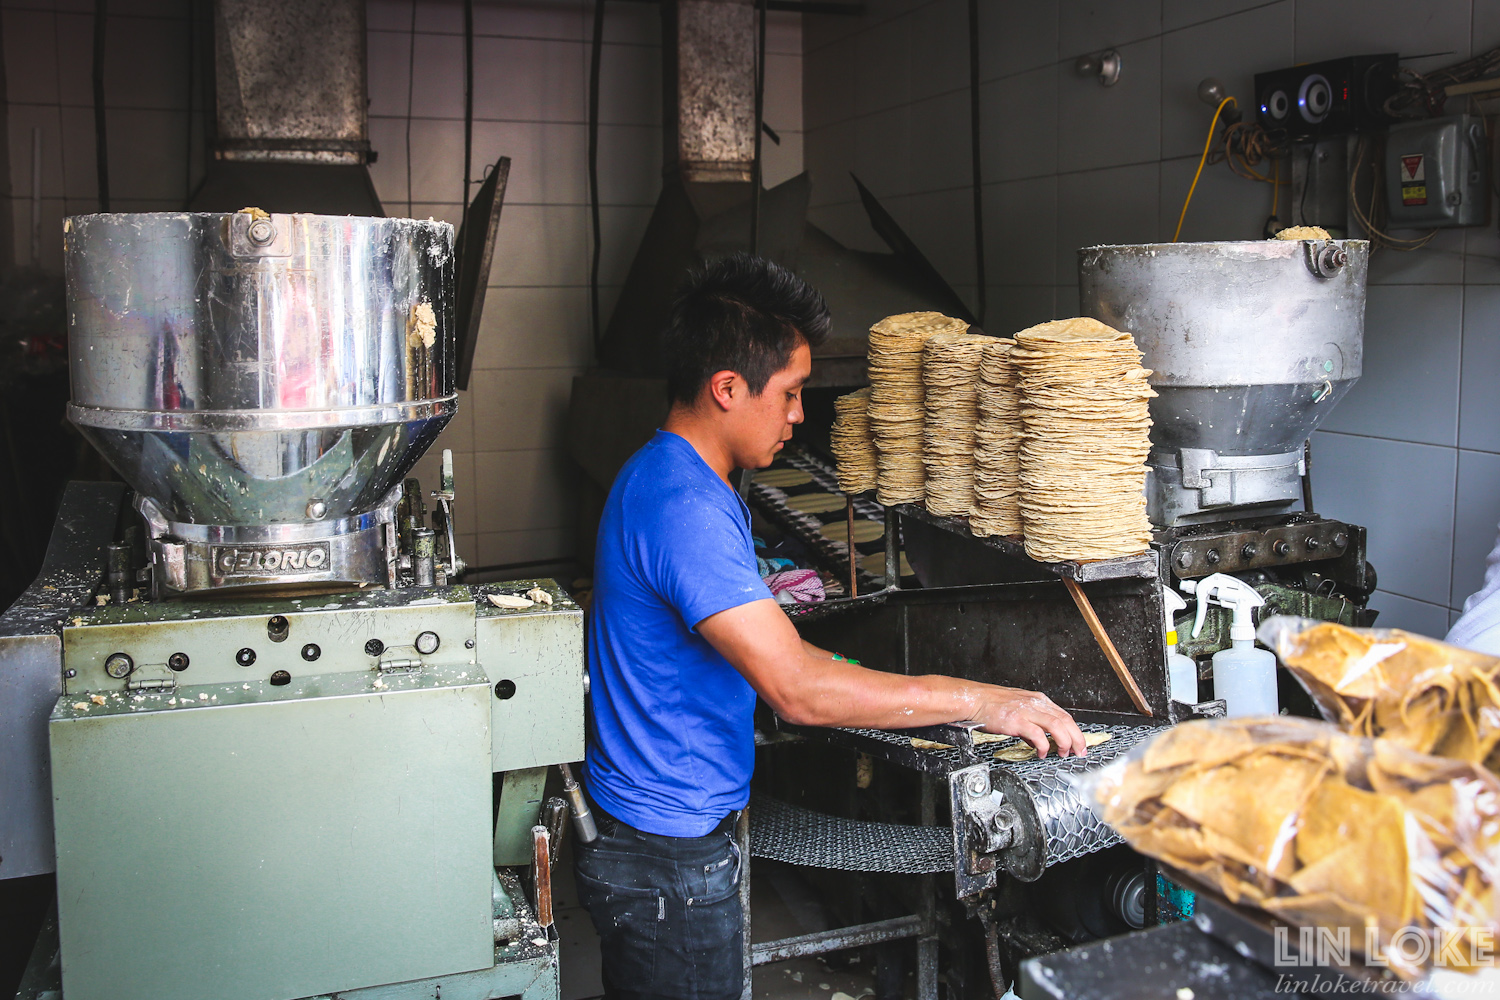 Amongst the glamorous and edgy cocktail clubs in Condesa/ Roma area are also traditional family-run businesses. This picture shows a boy hand-making corn tortillas in a wholesale tortilla shop.